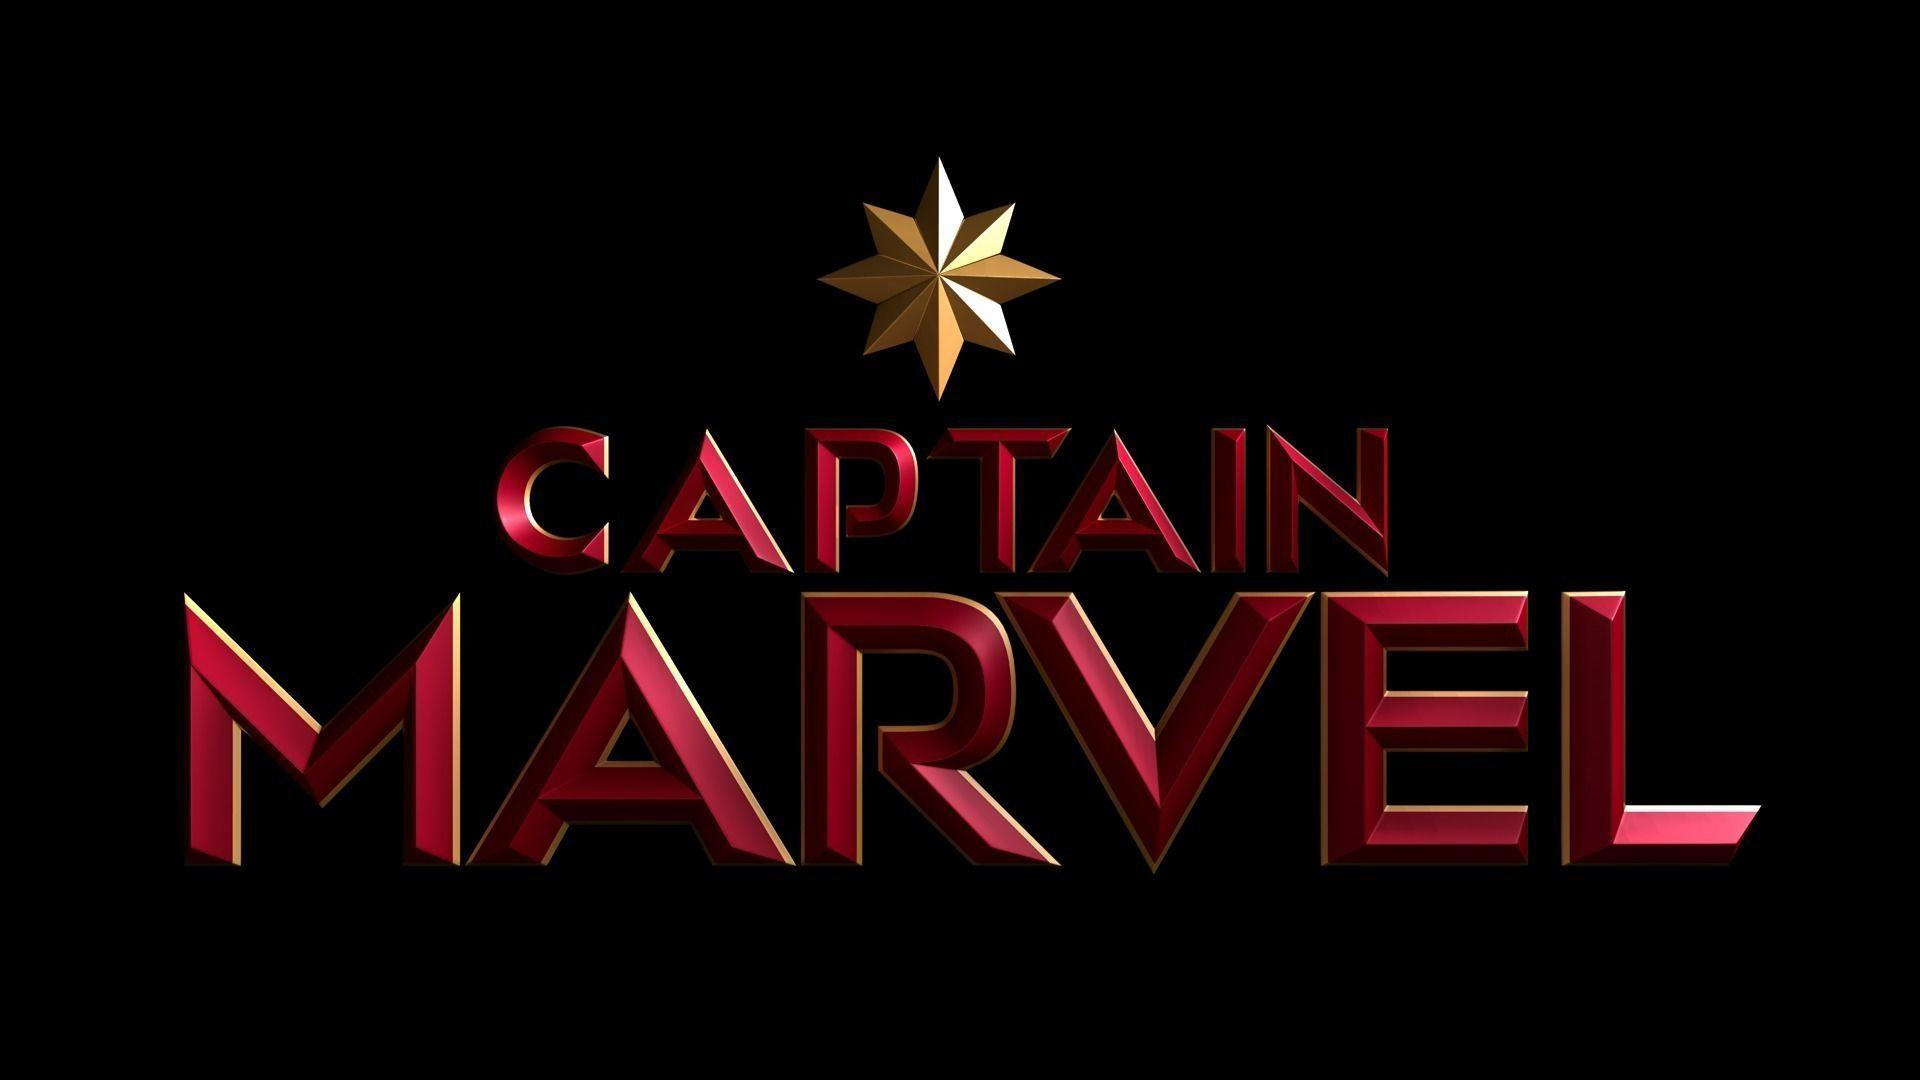 Captain Marvel Logo Wallpapers Wallpaper Cave